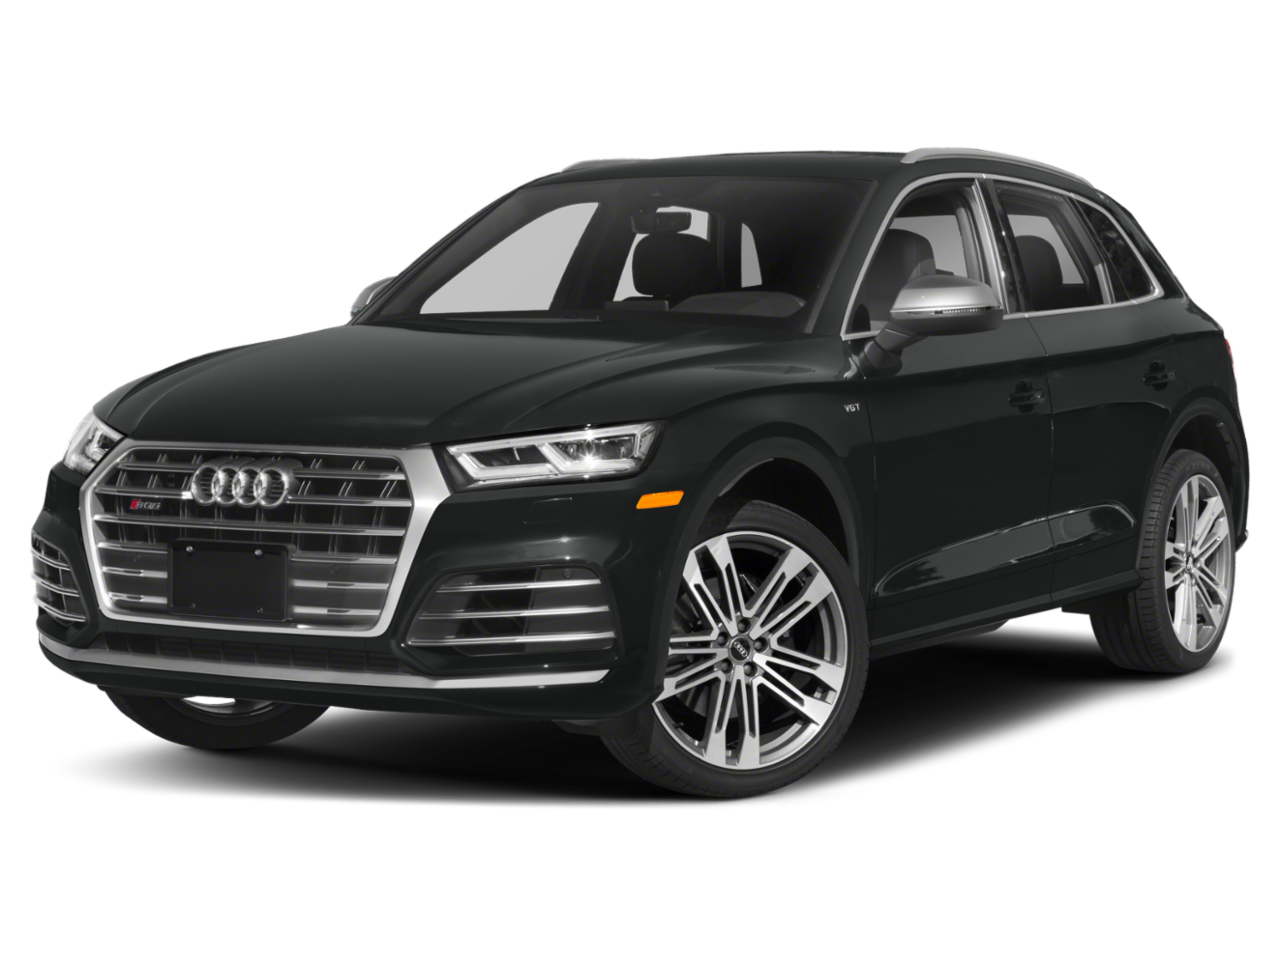 Buyer's Guide: 2020 Audi SQ5